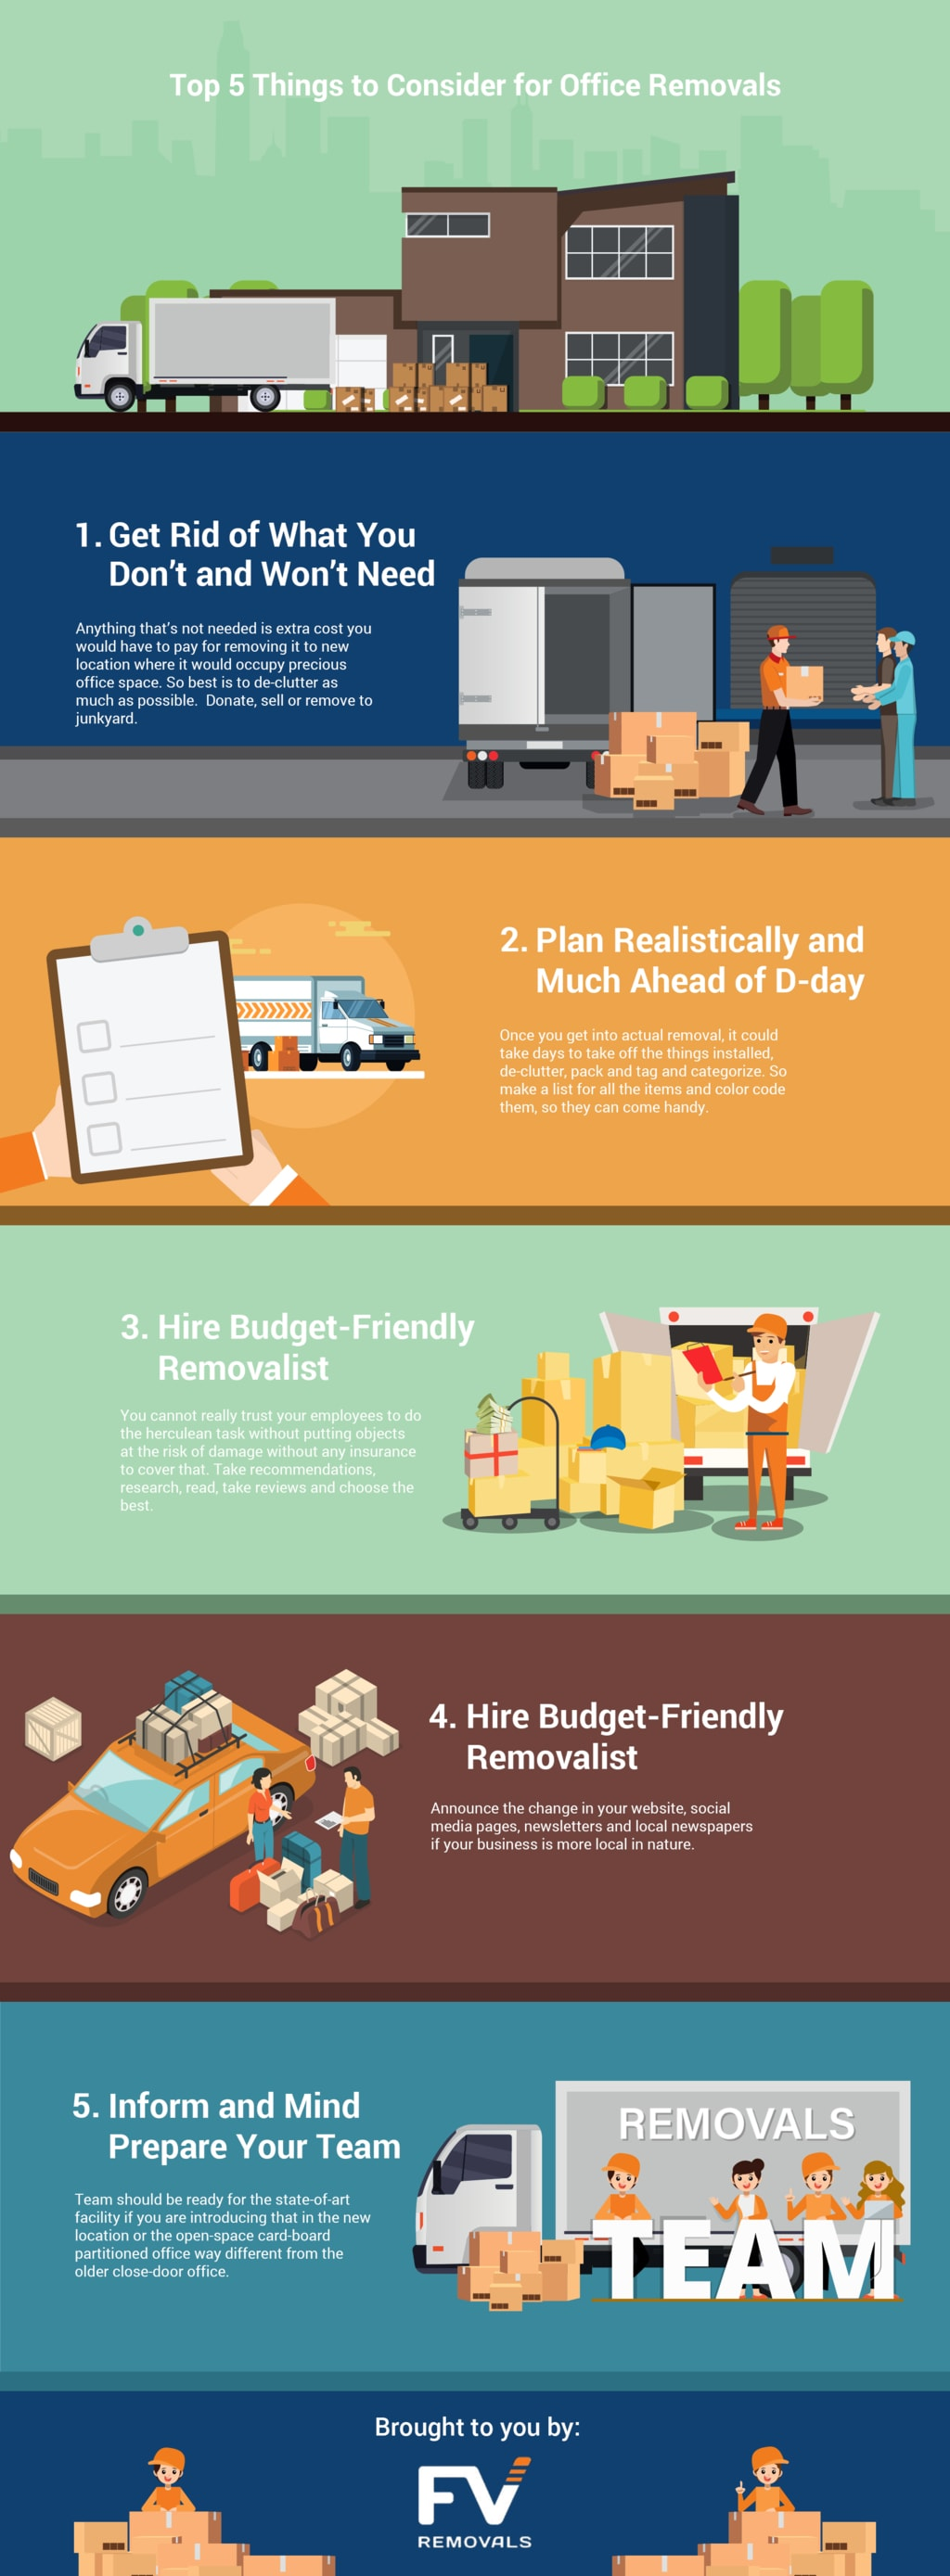 Top Things to Consider for House Removals                                         Via- via David Wrona